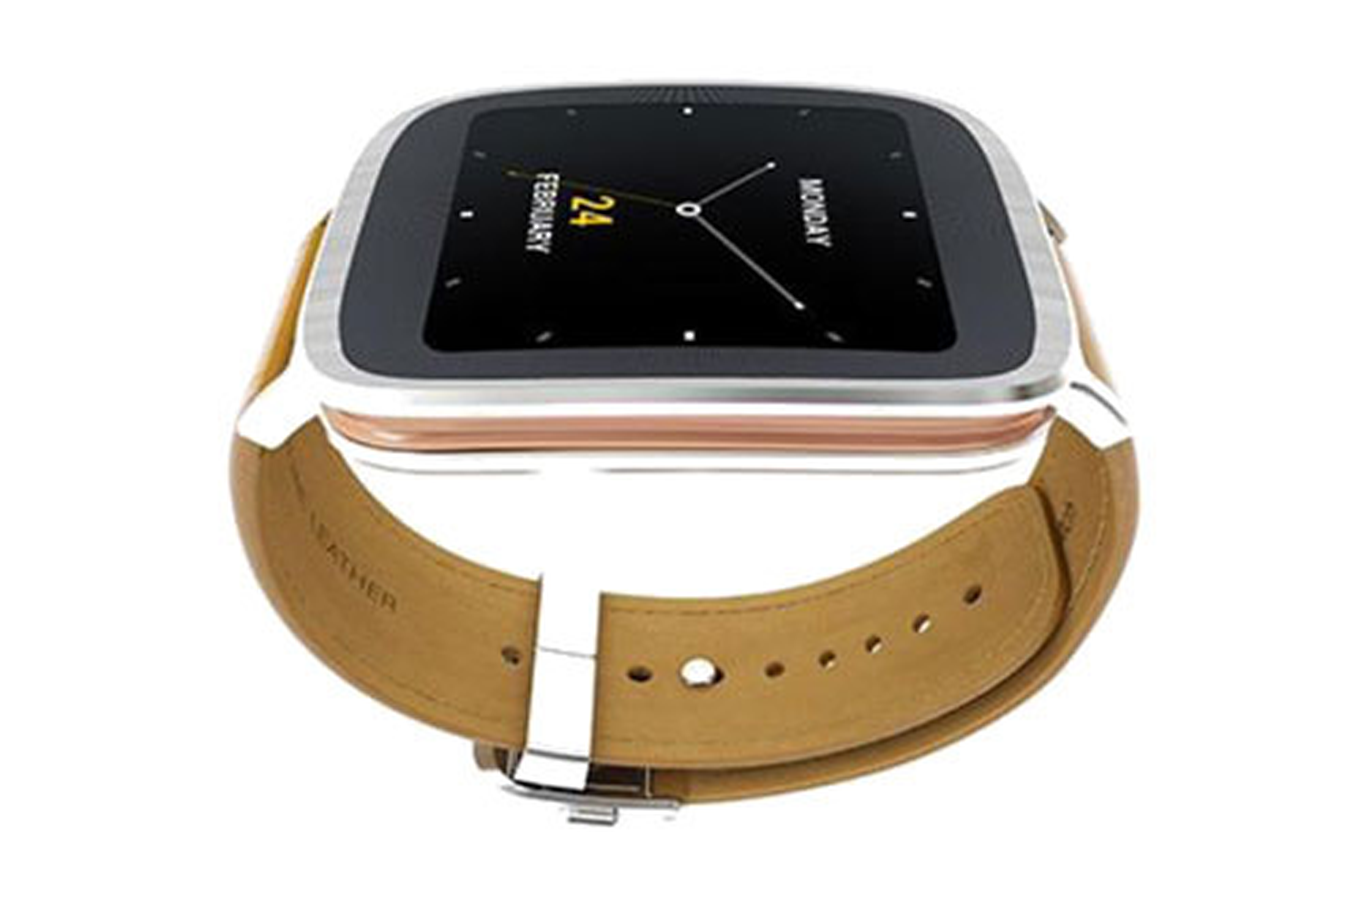 montre connect e asus zenwatch wi500q 1a0003 4065883 darty. Black Bedroom Furniture Sets. Home Design Ideas